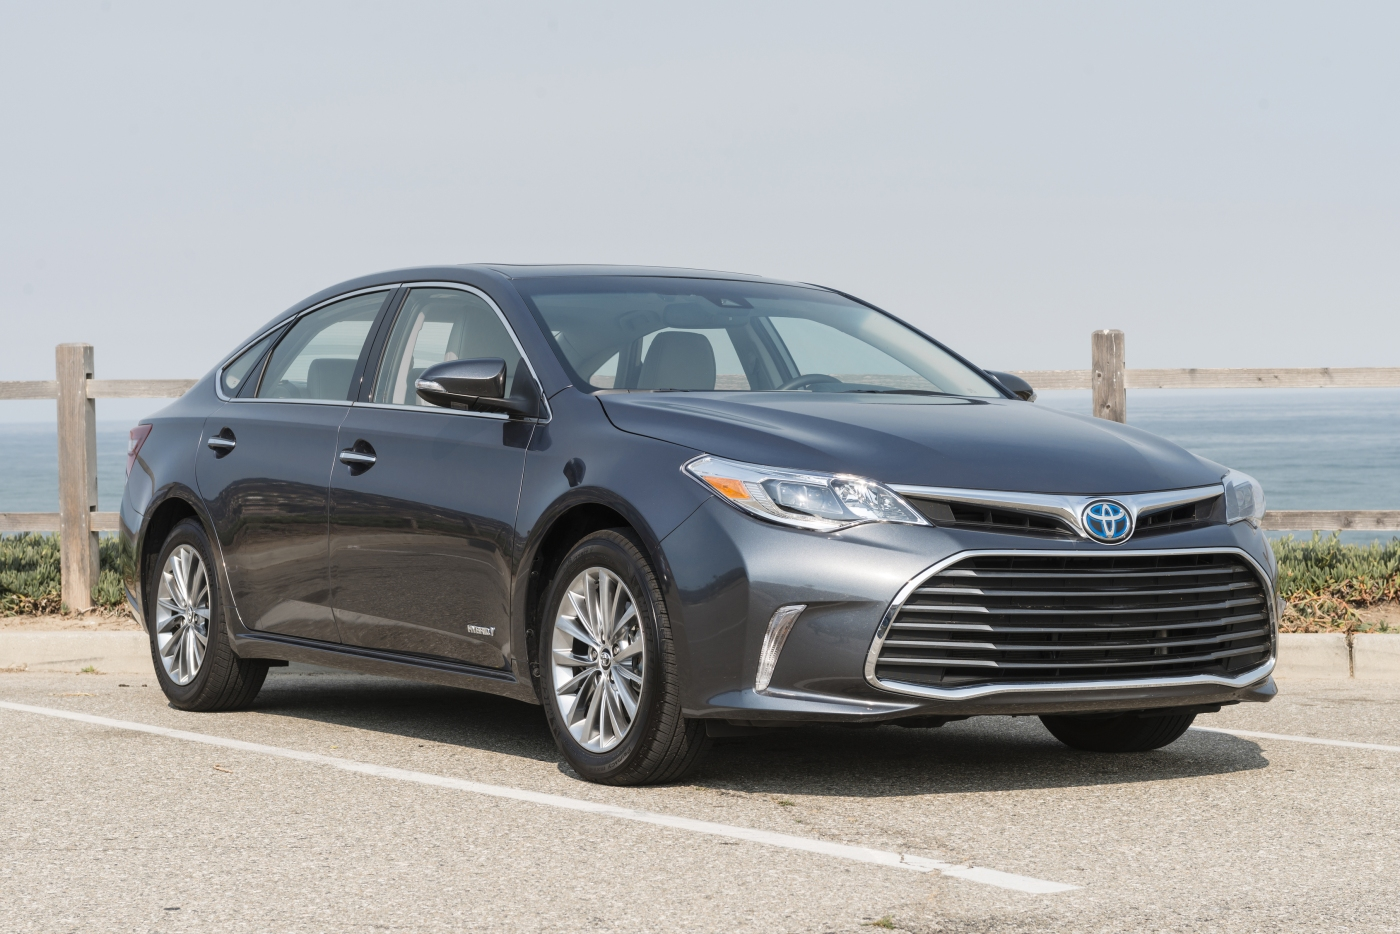 2016 toyota avalon limited hybrid a driveways review. Black Bedroom Furniture Sets. Home Design Ideas